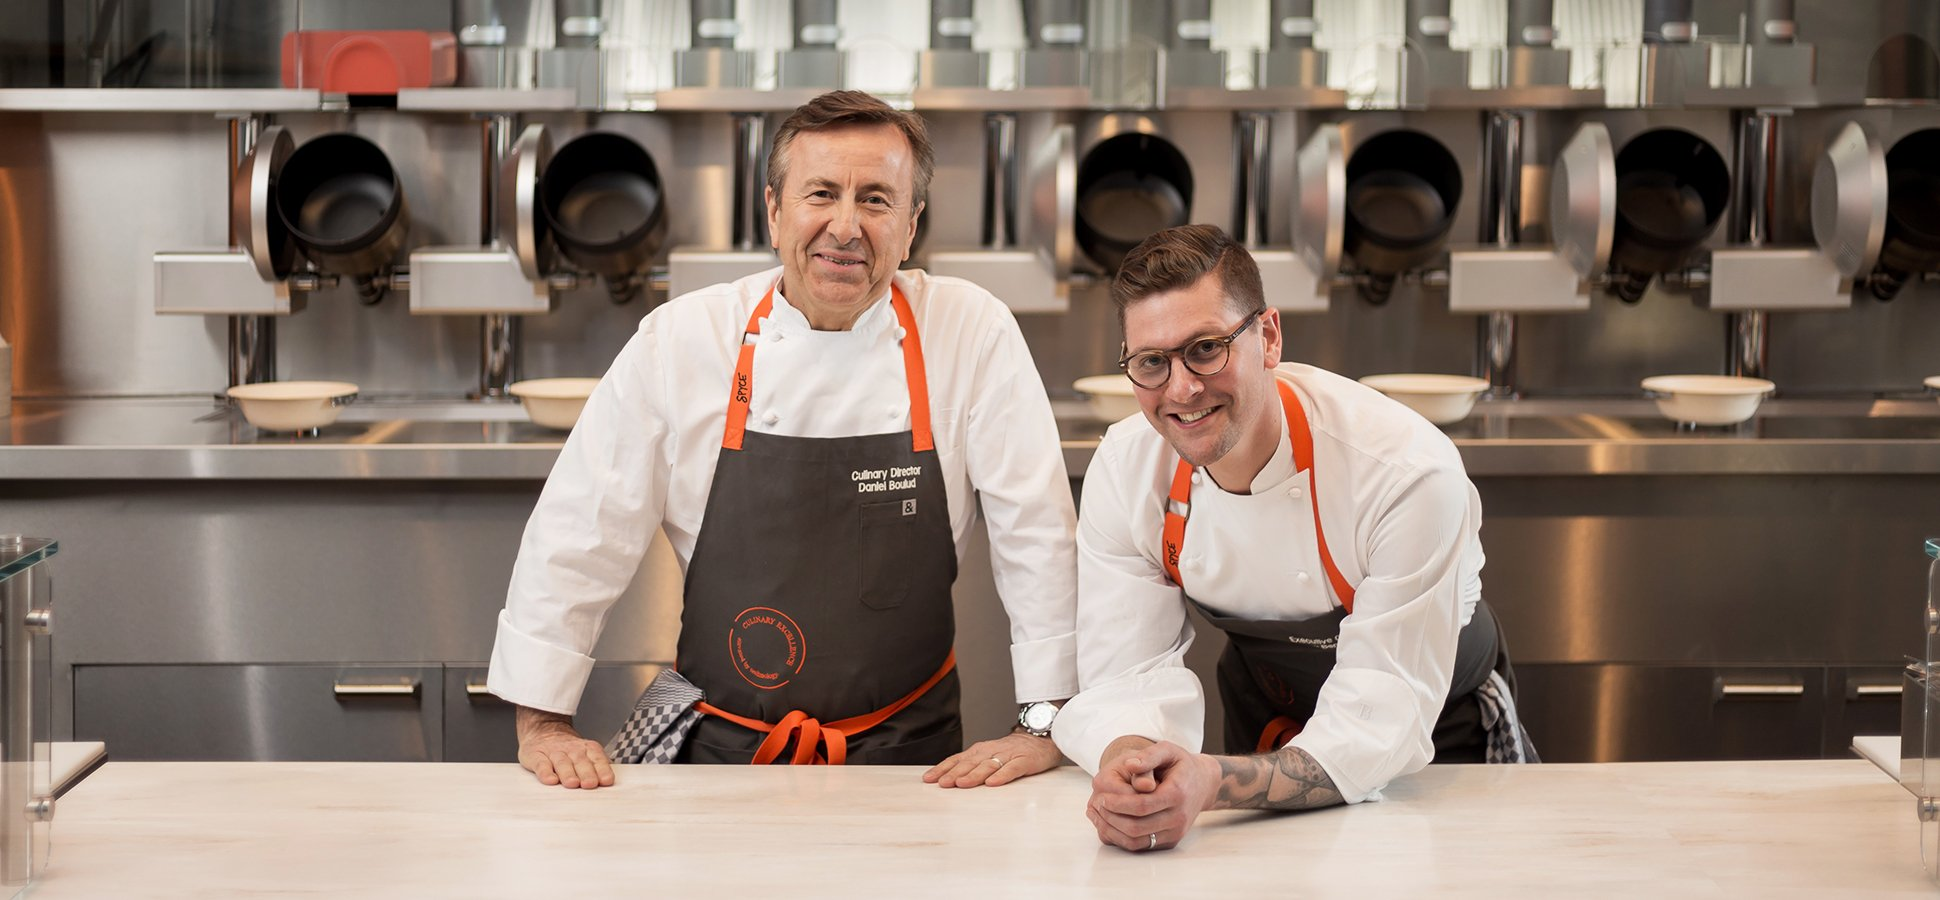 Superior Spyce Chef And Culinary Director Daniel Boulud (left) And Executive Chef  Sam Benson.